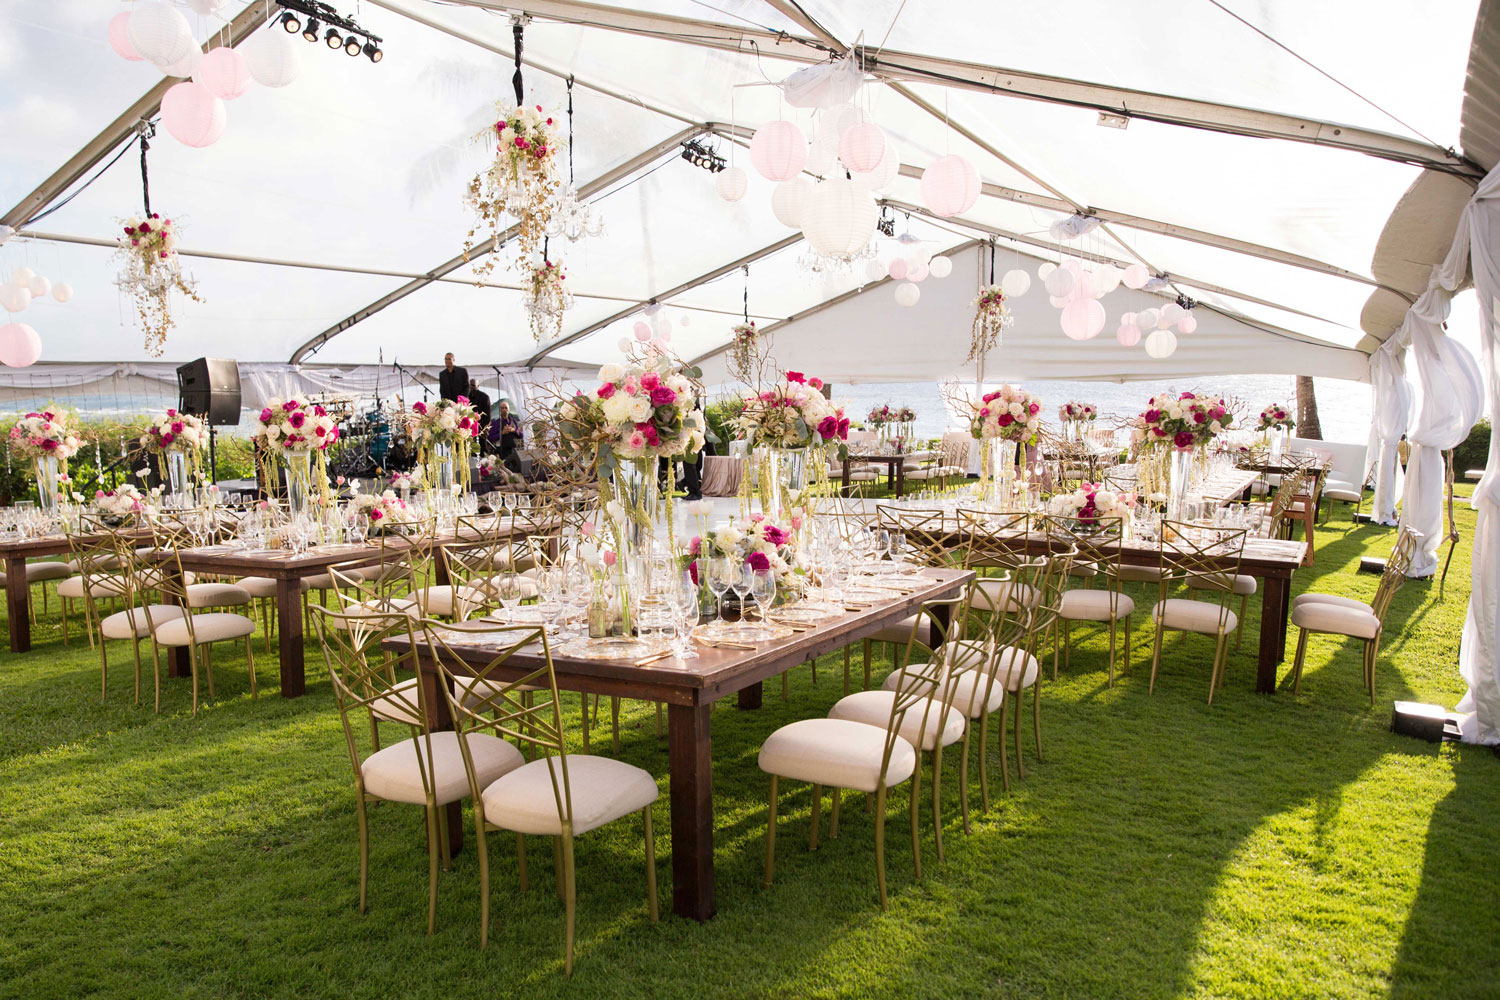 271/Domaine_Vaugouard/Wedding/The-Day-Ross-Faulkner-tent.jpg